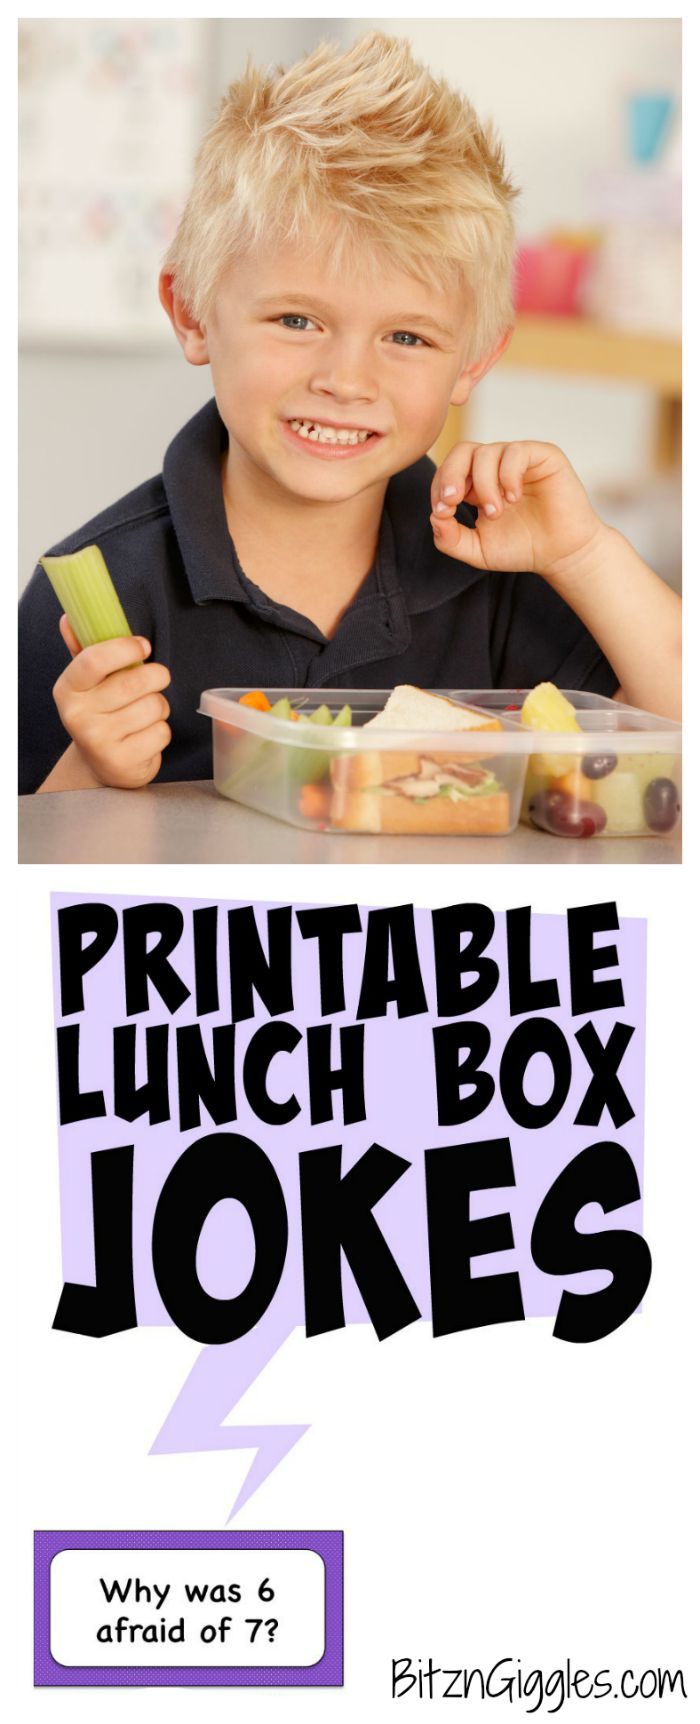 Printable Lunch Box Jokes - 10 printable joke cards perfect for putting a smile on your child's face at school! Let them know you're thinking of them!